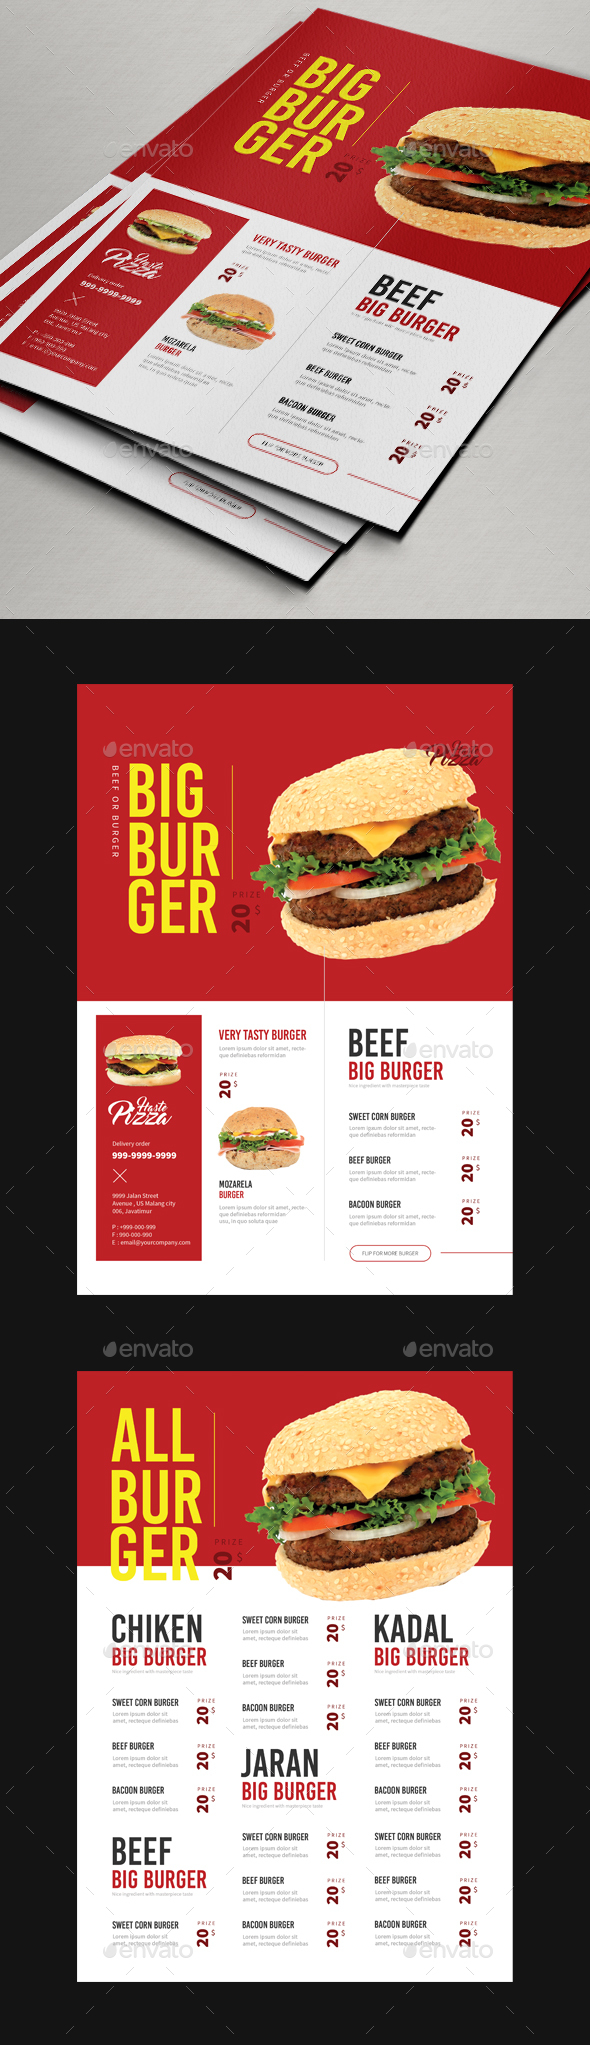 Burger Flyer or Menu - Restaurant Flyers